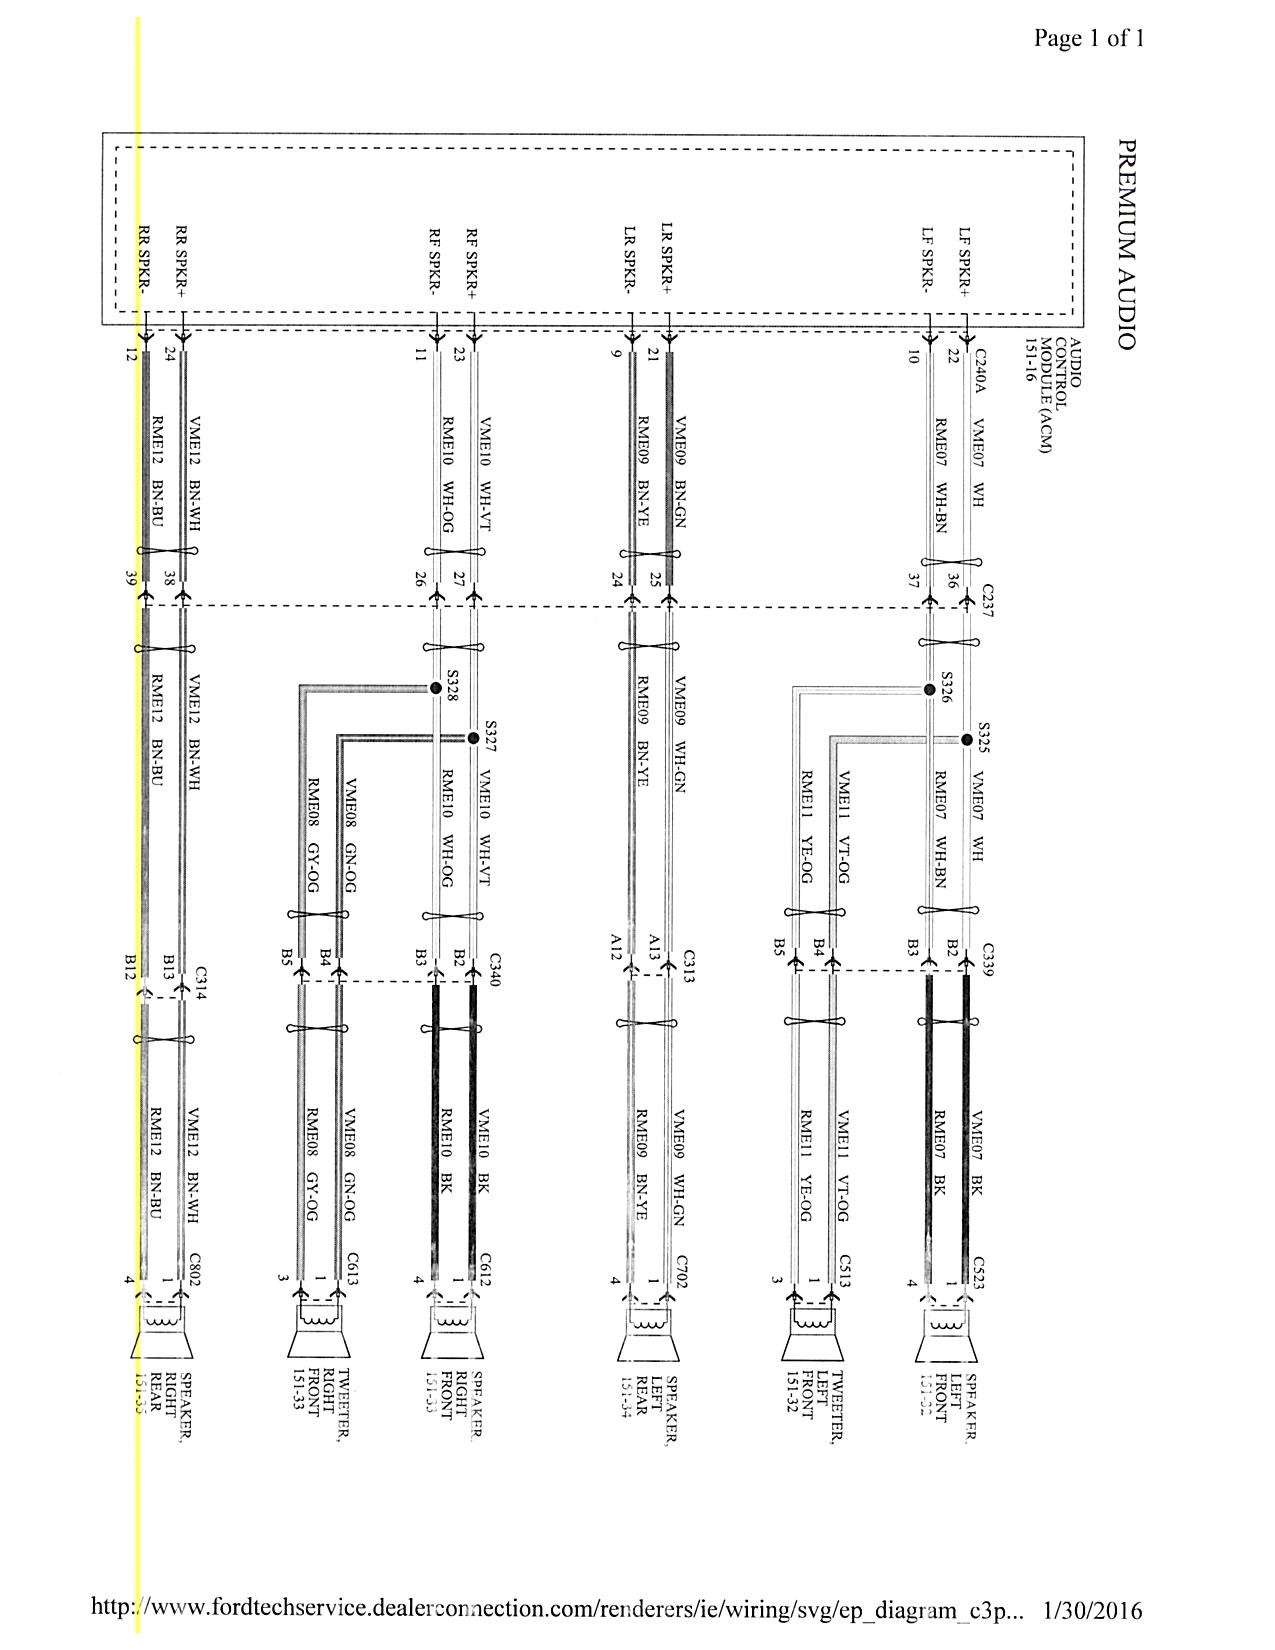 Ford Focus Svt Radio Wiring Diagram Auto Electrical For Dual Led Light Bars Free Download Jeep Grand Cherokee 1965 Buick Skylark Power Window Harness